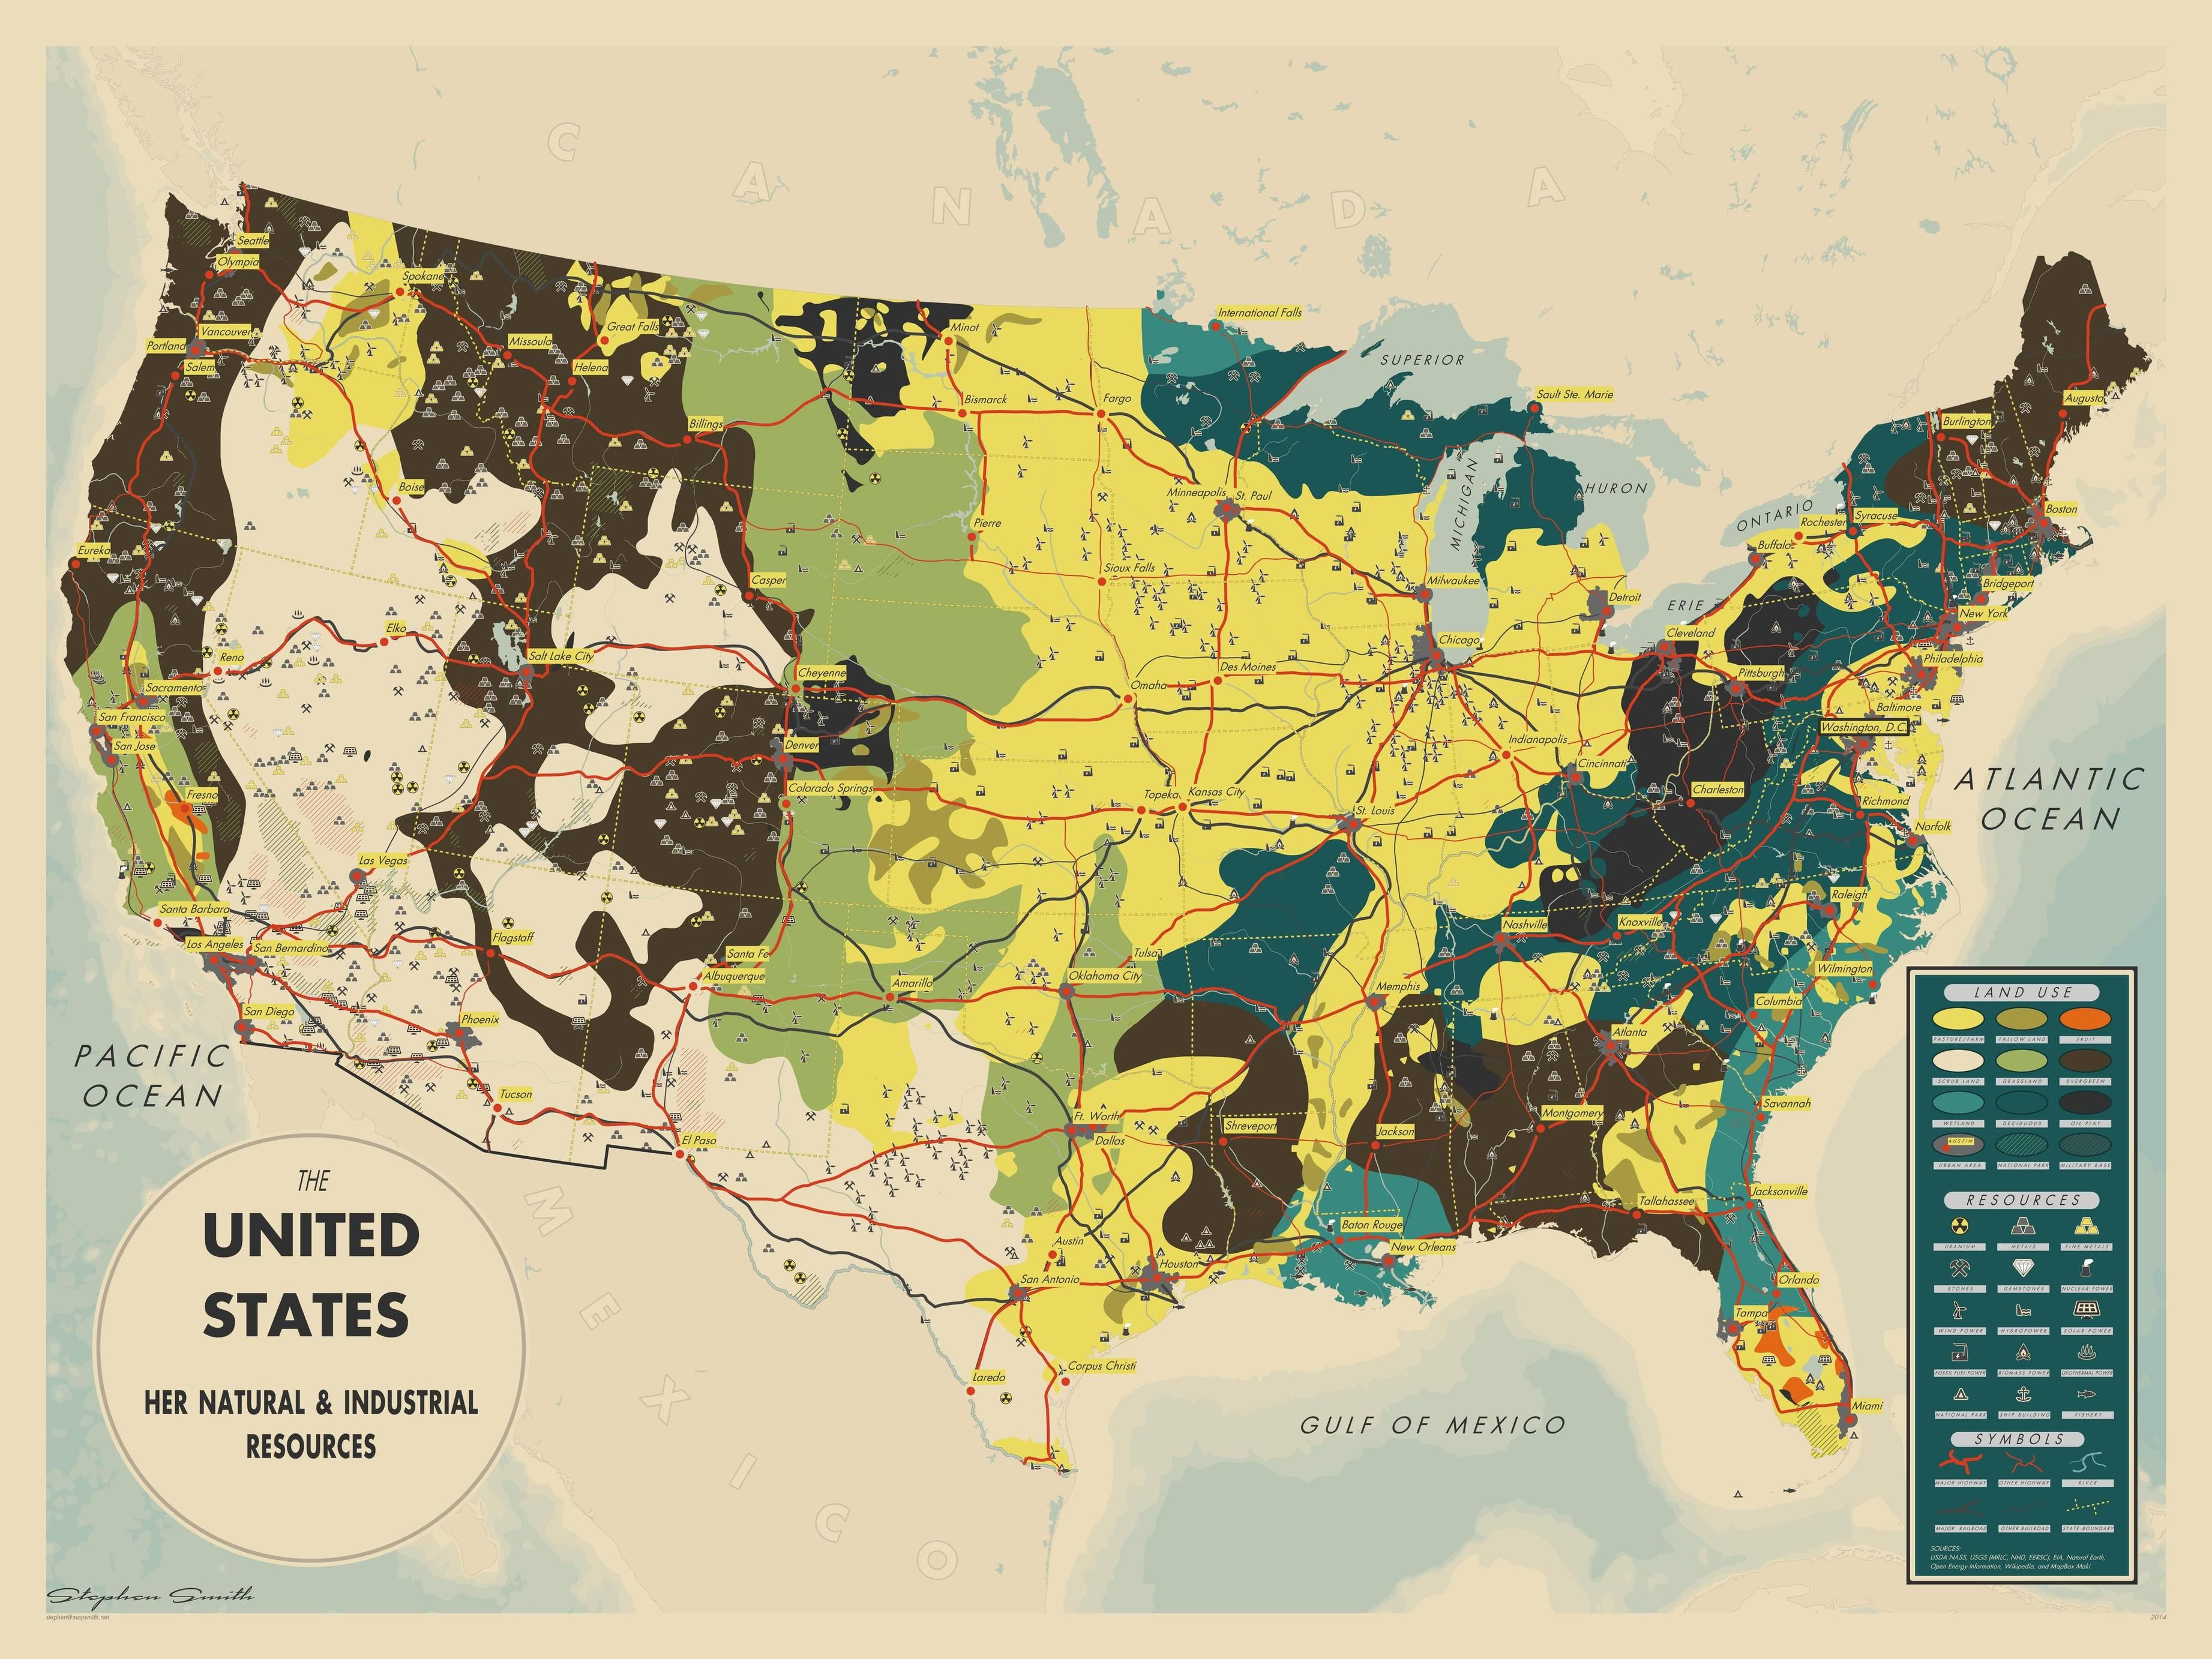 The United States Her Natural And Industrial Resources By - Where Are The Industrial On The Us Map